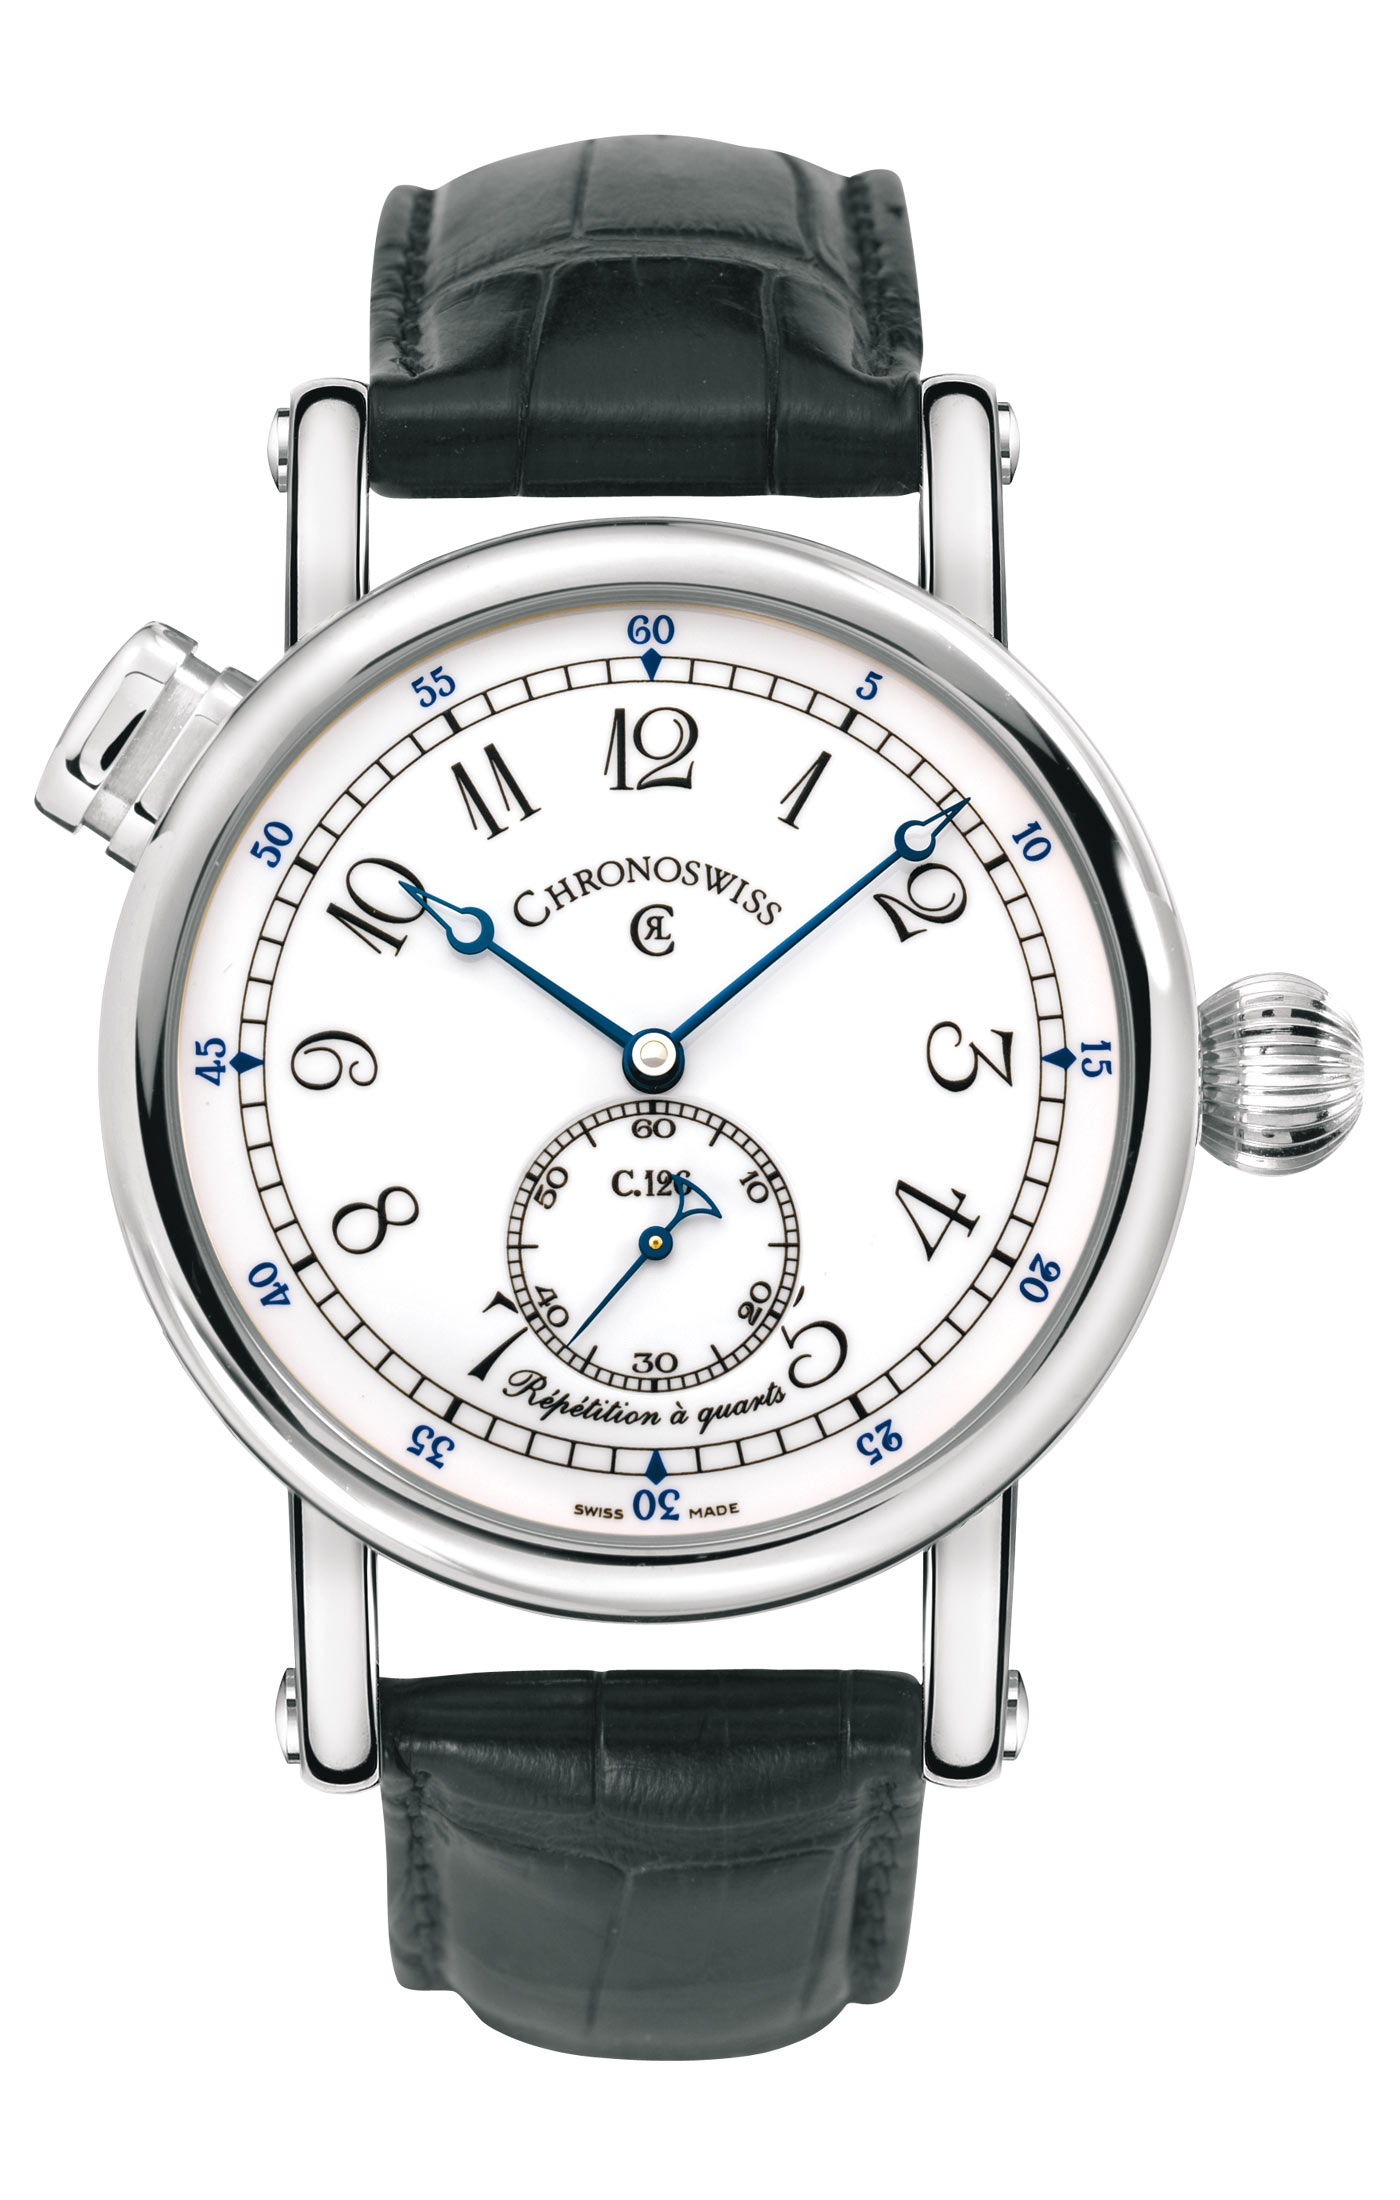 часы Chronoswiss Repetition a Quarts